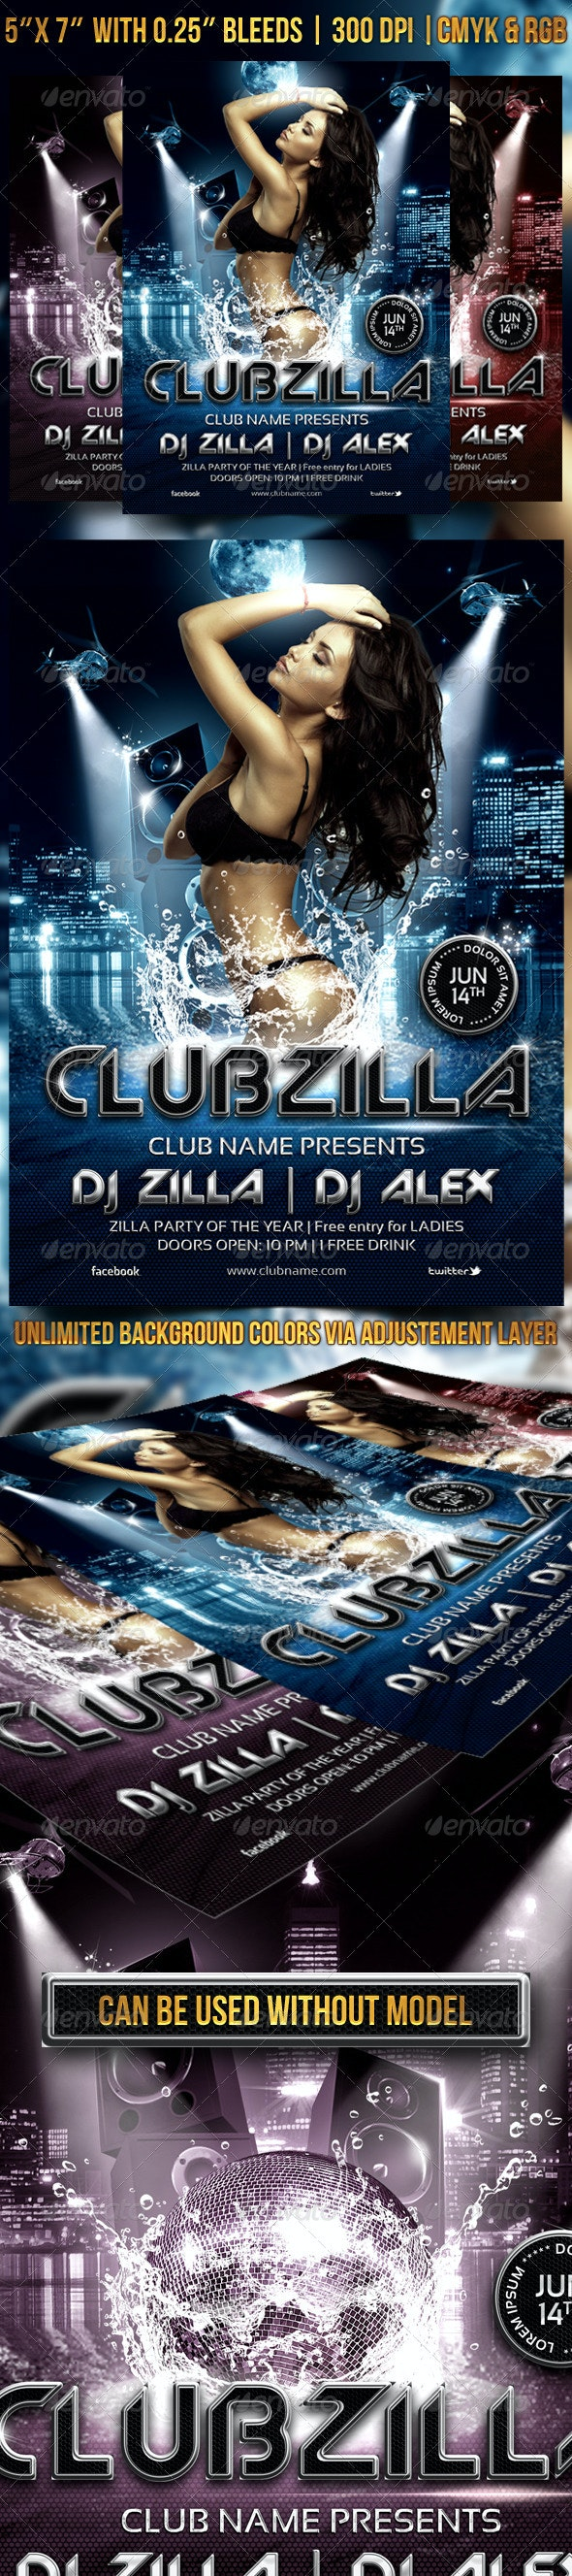 Clubzilla Party Flyer - Clubs & Parties Events